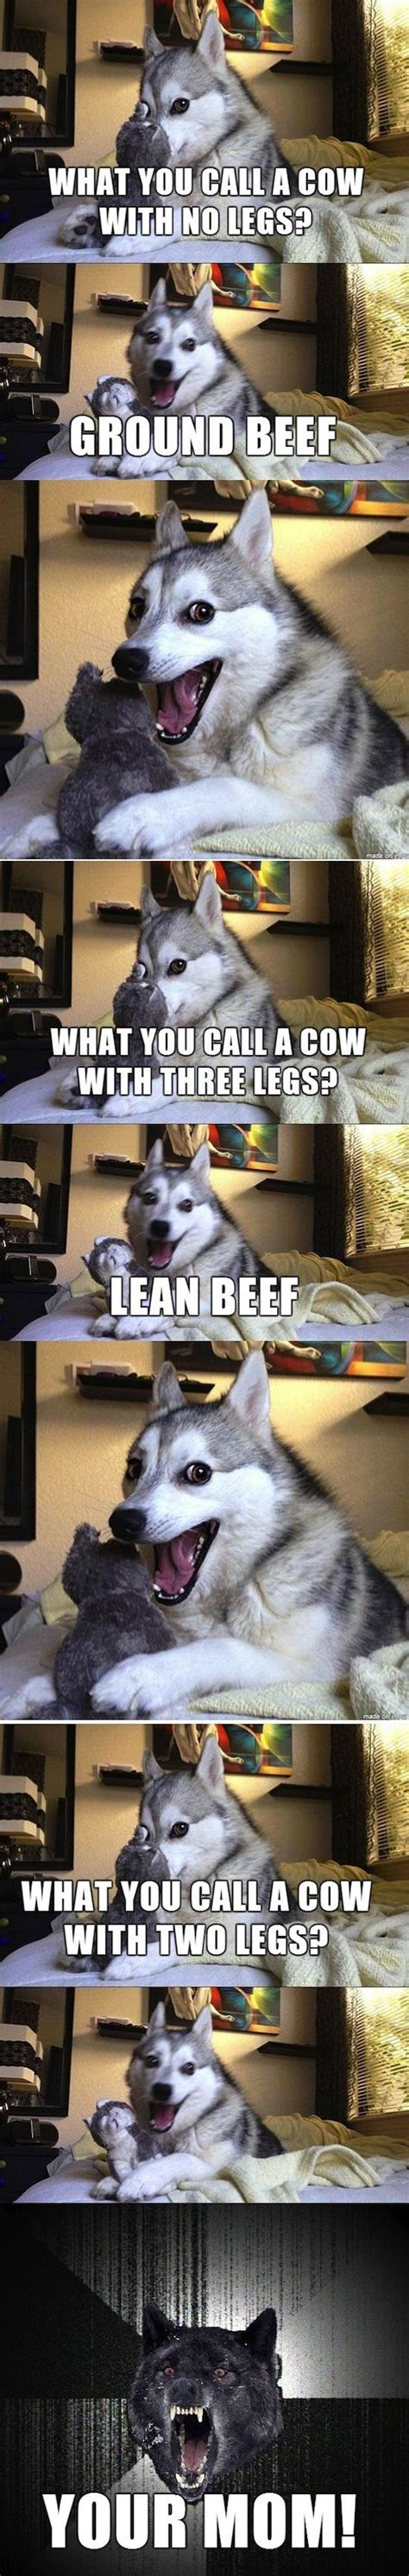 Pun Husky Meme - 48 best images about puns on pinterest jokes dad